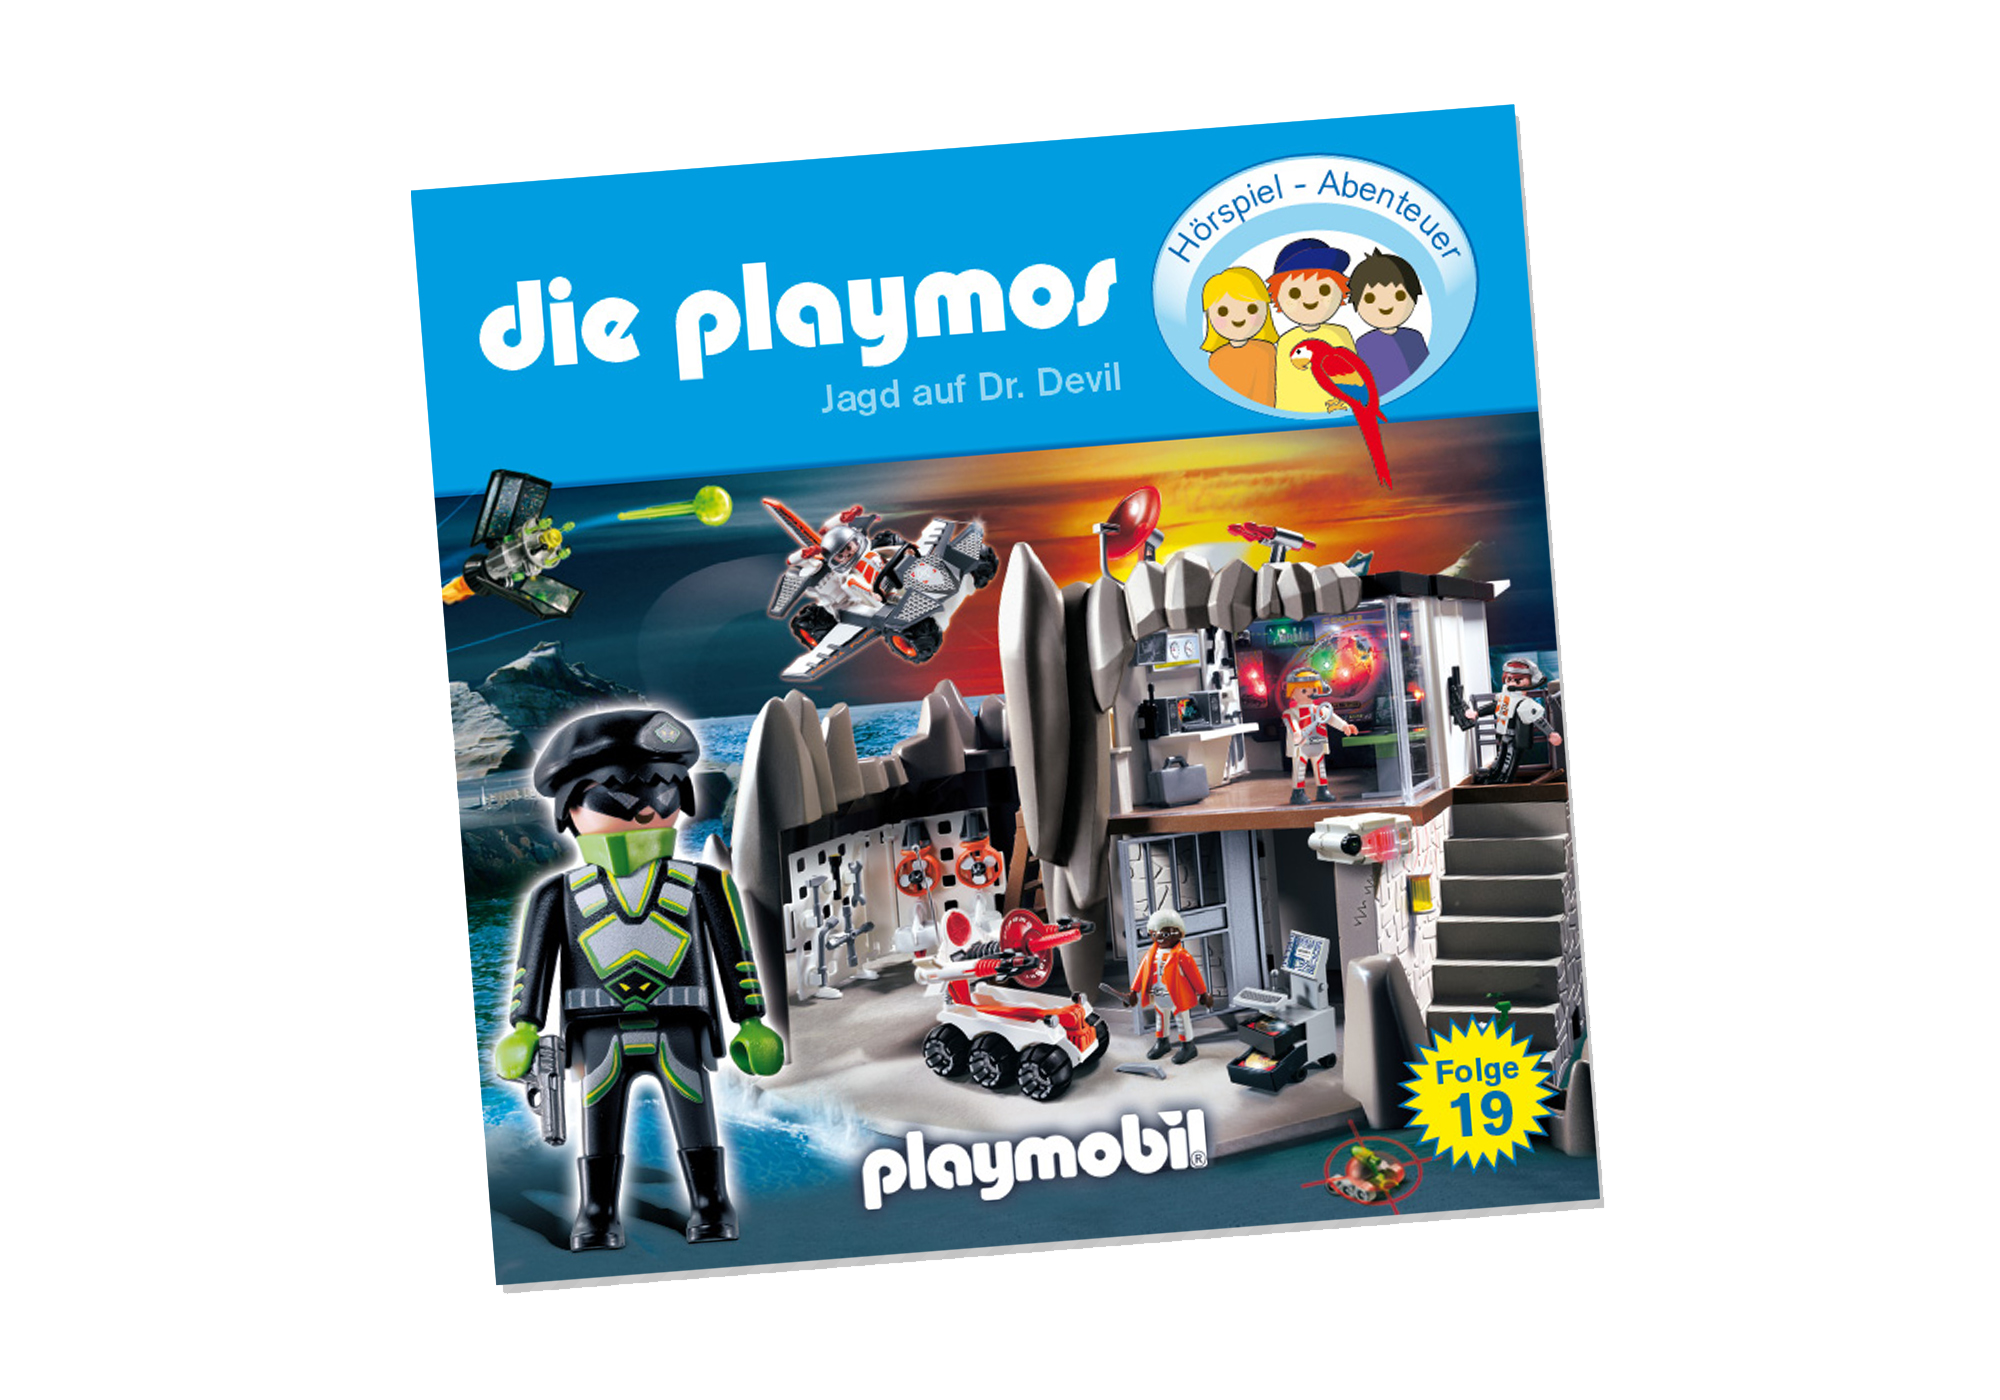 http://media.playmobil.com/i/playmobil/80272_product_detail